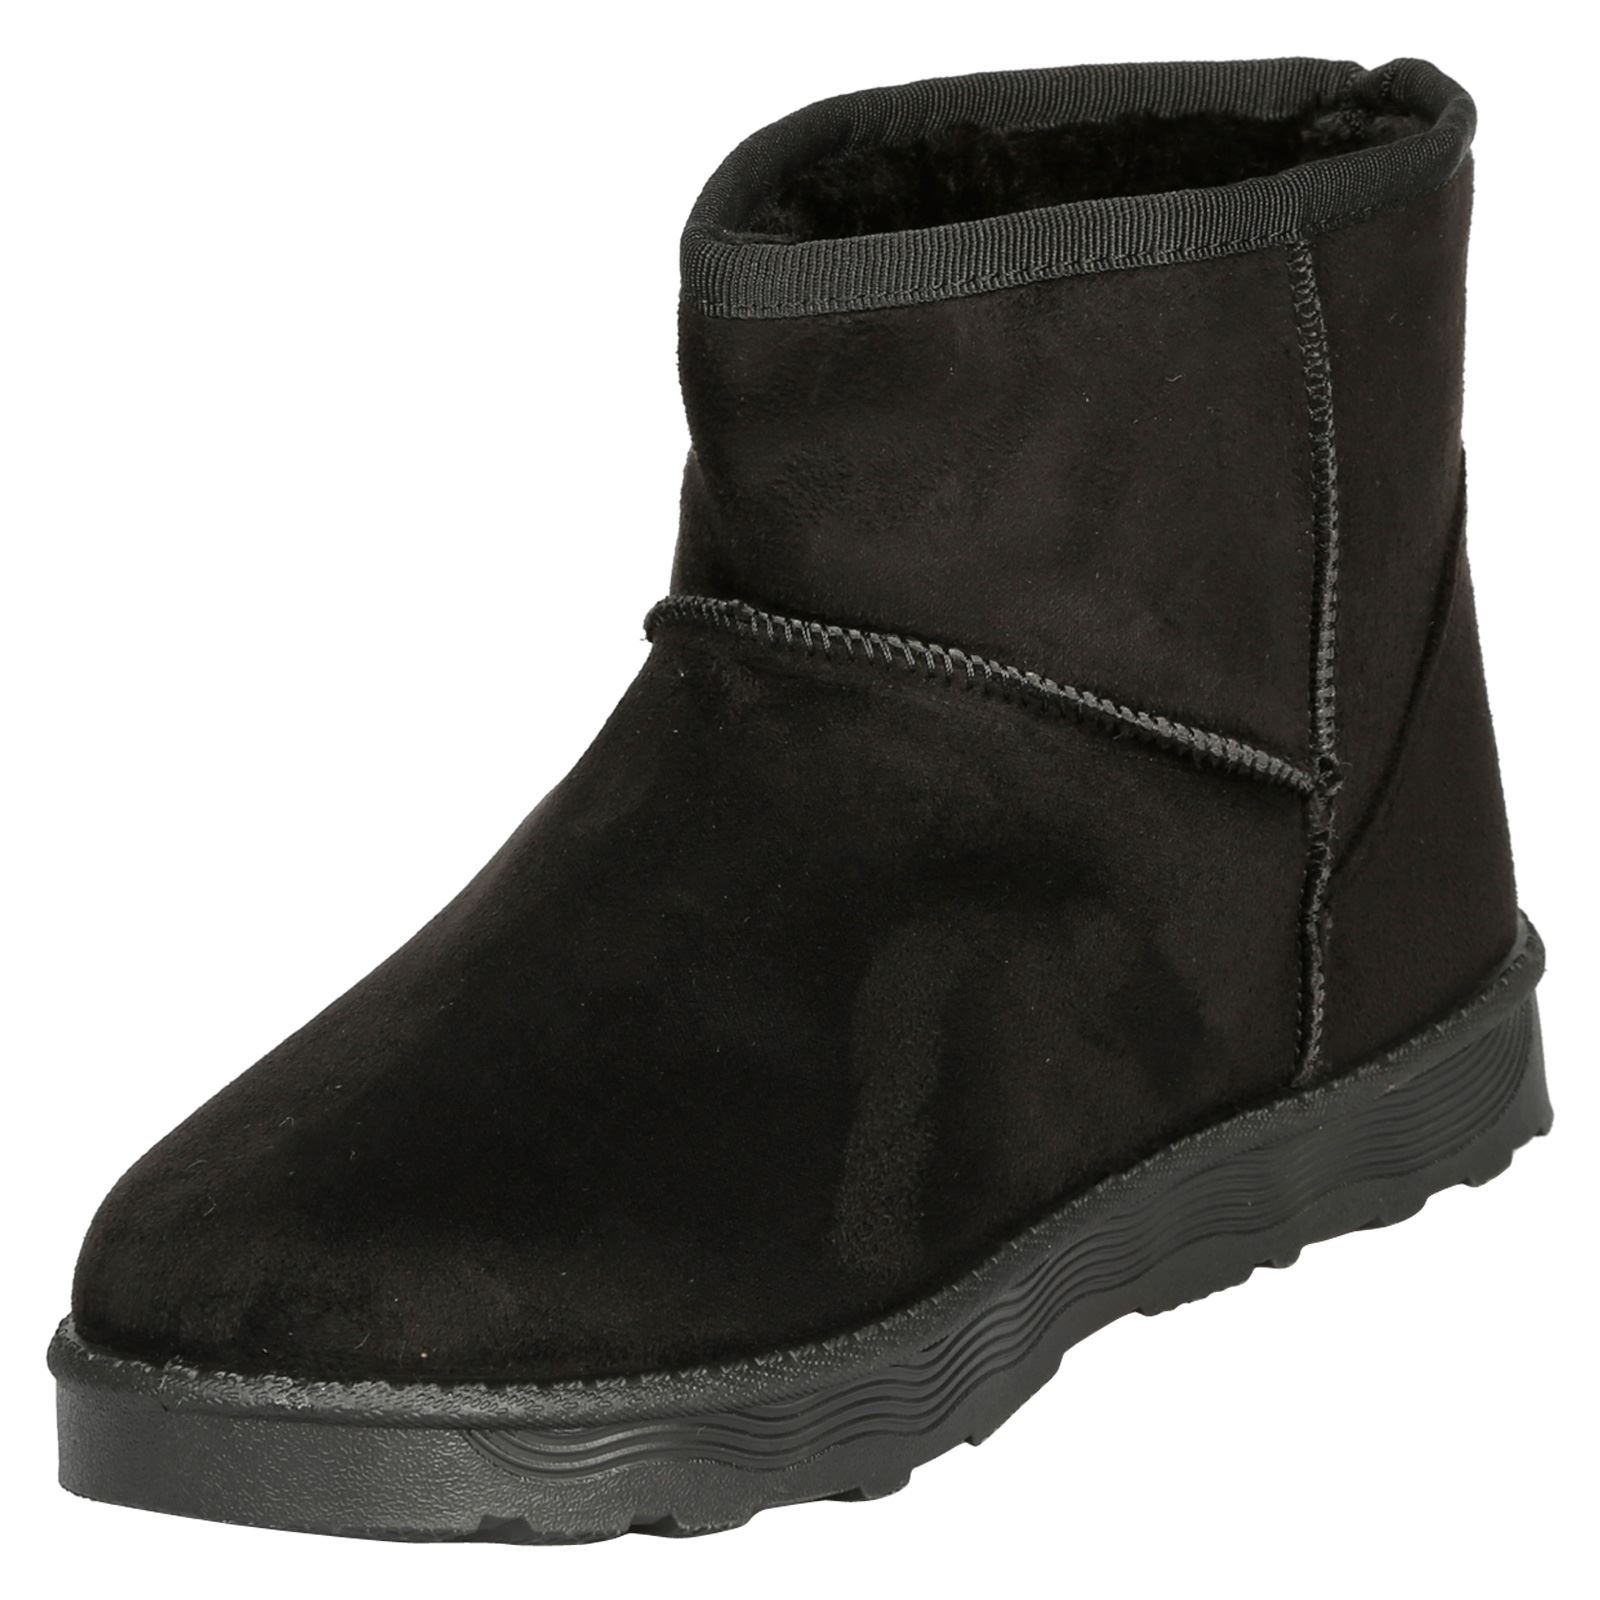 Naomi-Womens-Platfrom-Flat-Fur-Lined-Pull-On-Snug-Snow-Boots-Casual-Ladies-Size thumbnail 4